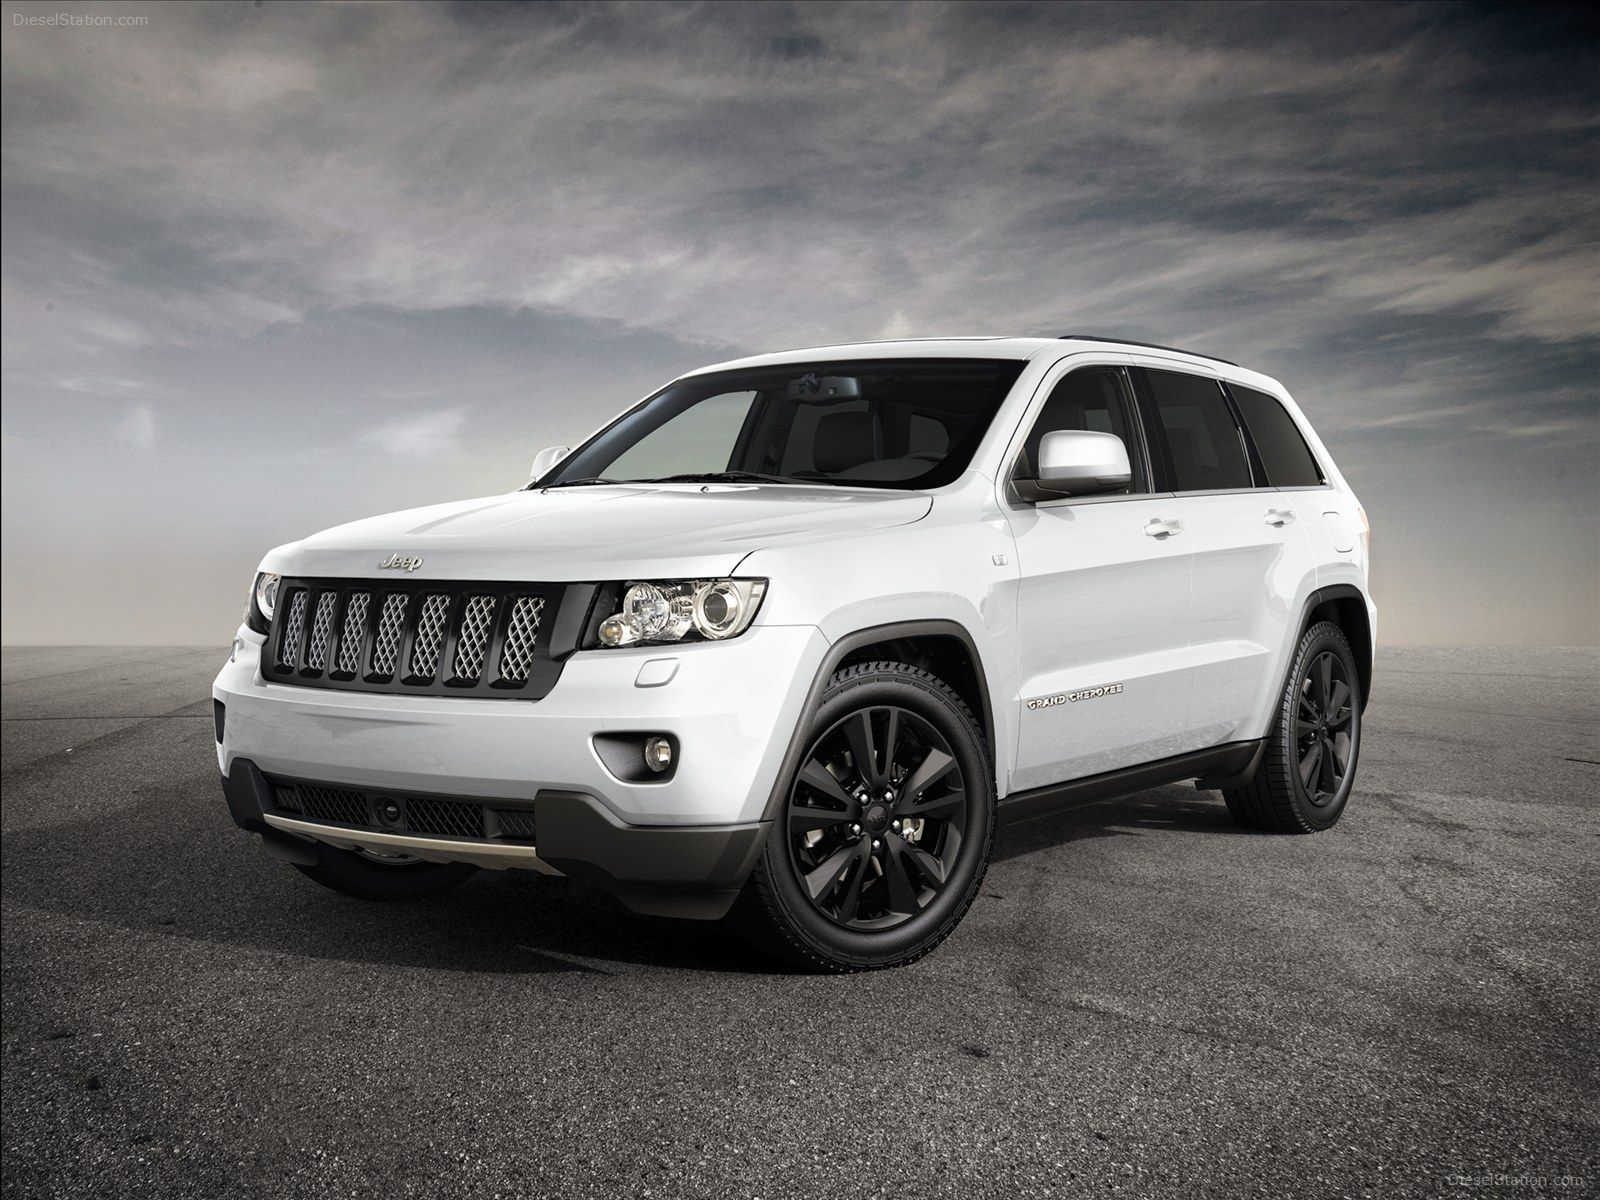 Jeep Grand Cherokee Jeep Grand Cherokee Diesel Station Jeep Grand Cherokee Sport Jeep Grand Cherokee Srt Jeep